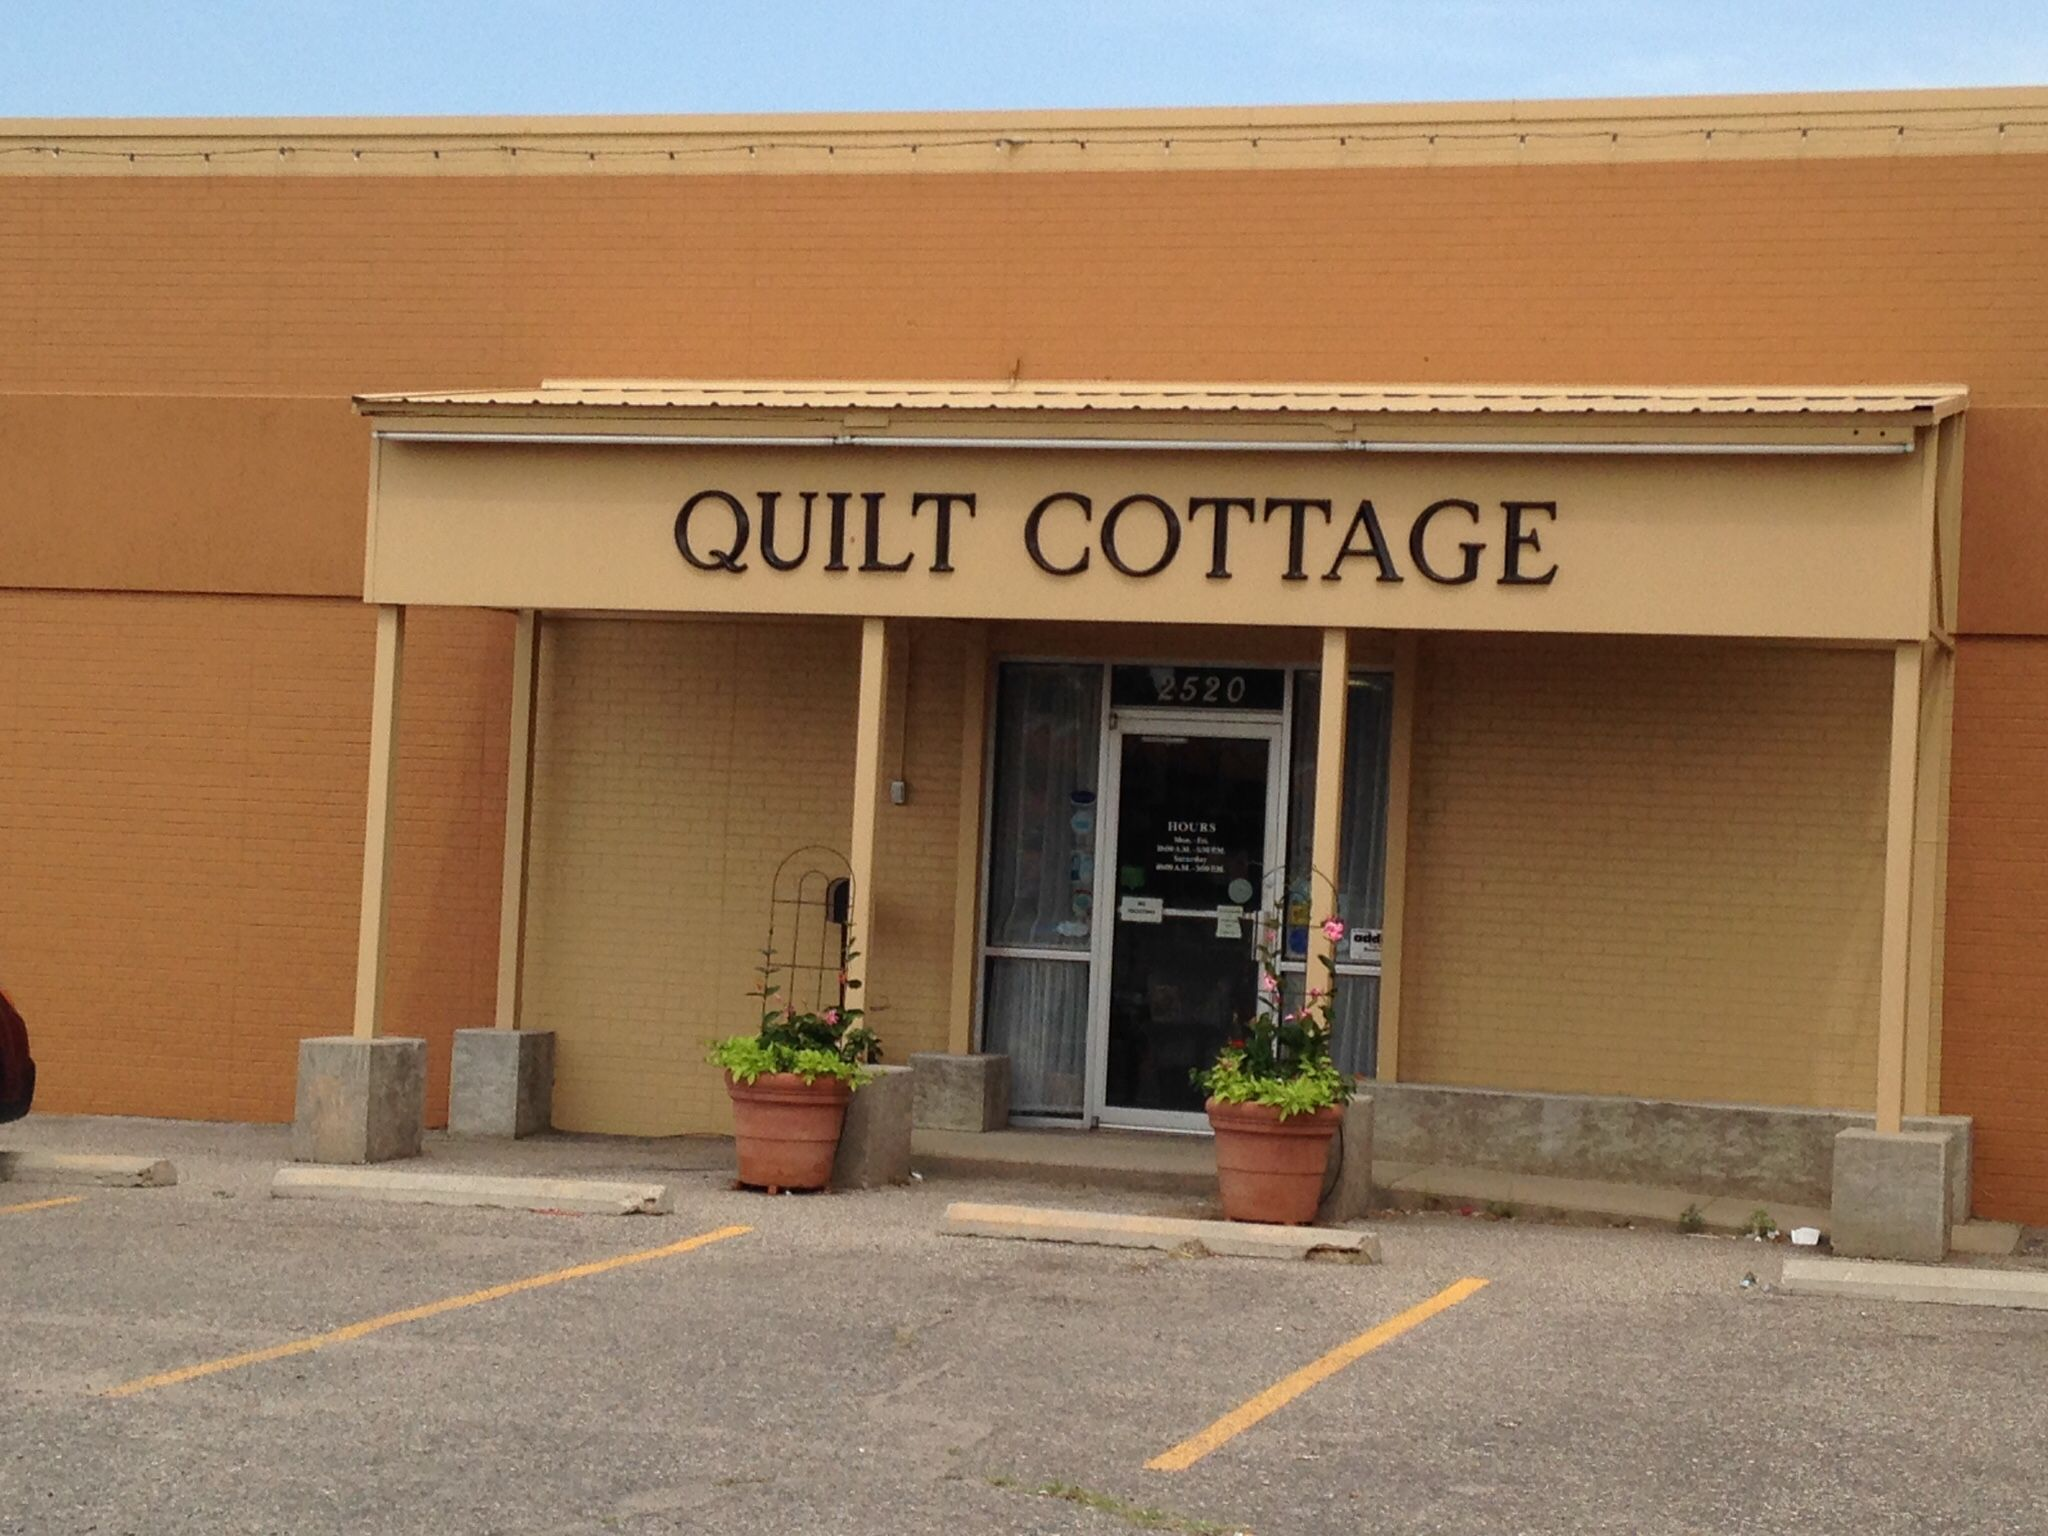 Quilt Cottage Hays Ks Row By Row Stop Unusual Row Based On